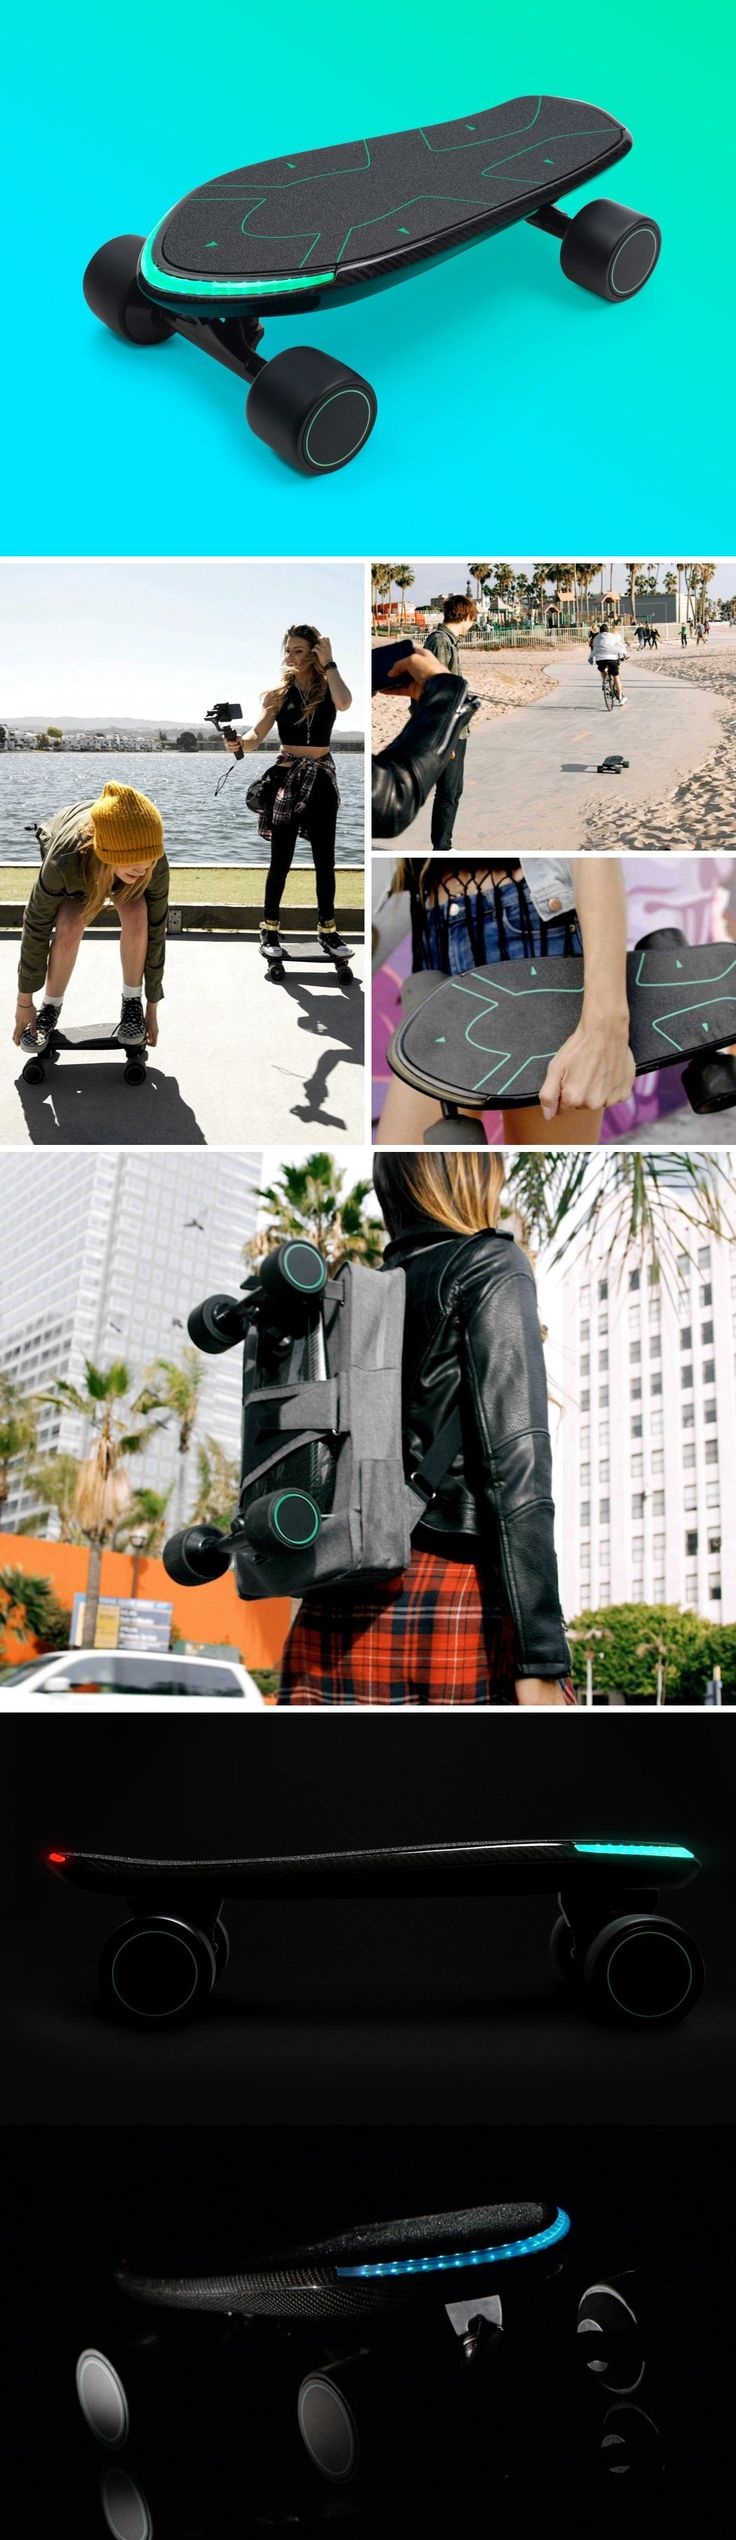 The Spectra is a rather tech-infused skateboard. Probably the only riding board that has machine-learning, the board learns from the way you ride it, allowing you to control it completely through leg-movements. Like most conventional e-skateboards, the Spectra comes with a motor-powered ride, but unlike others that rely on an external control (like a remote) to accelerate or decelerate, the controls are built right into the board itself. Buy Now!